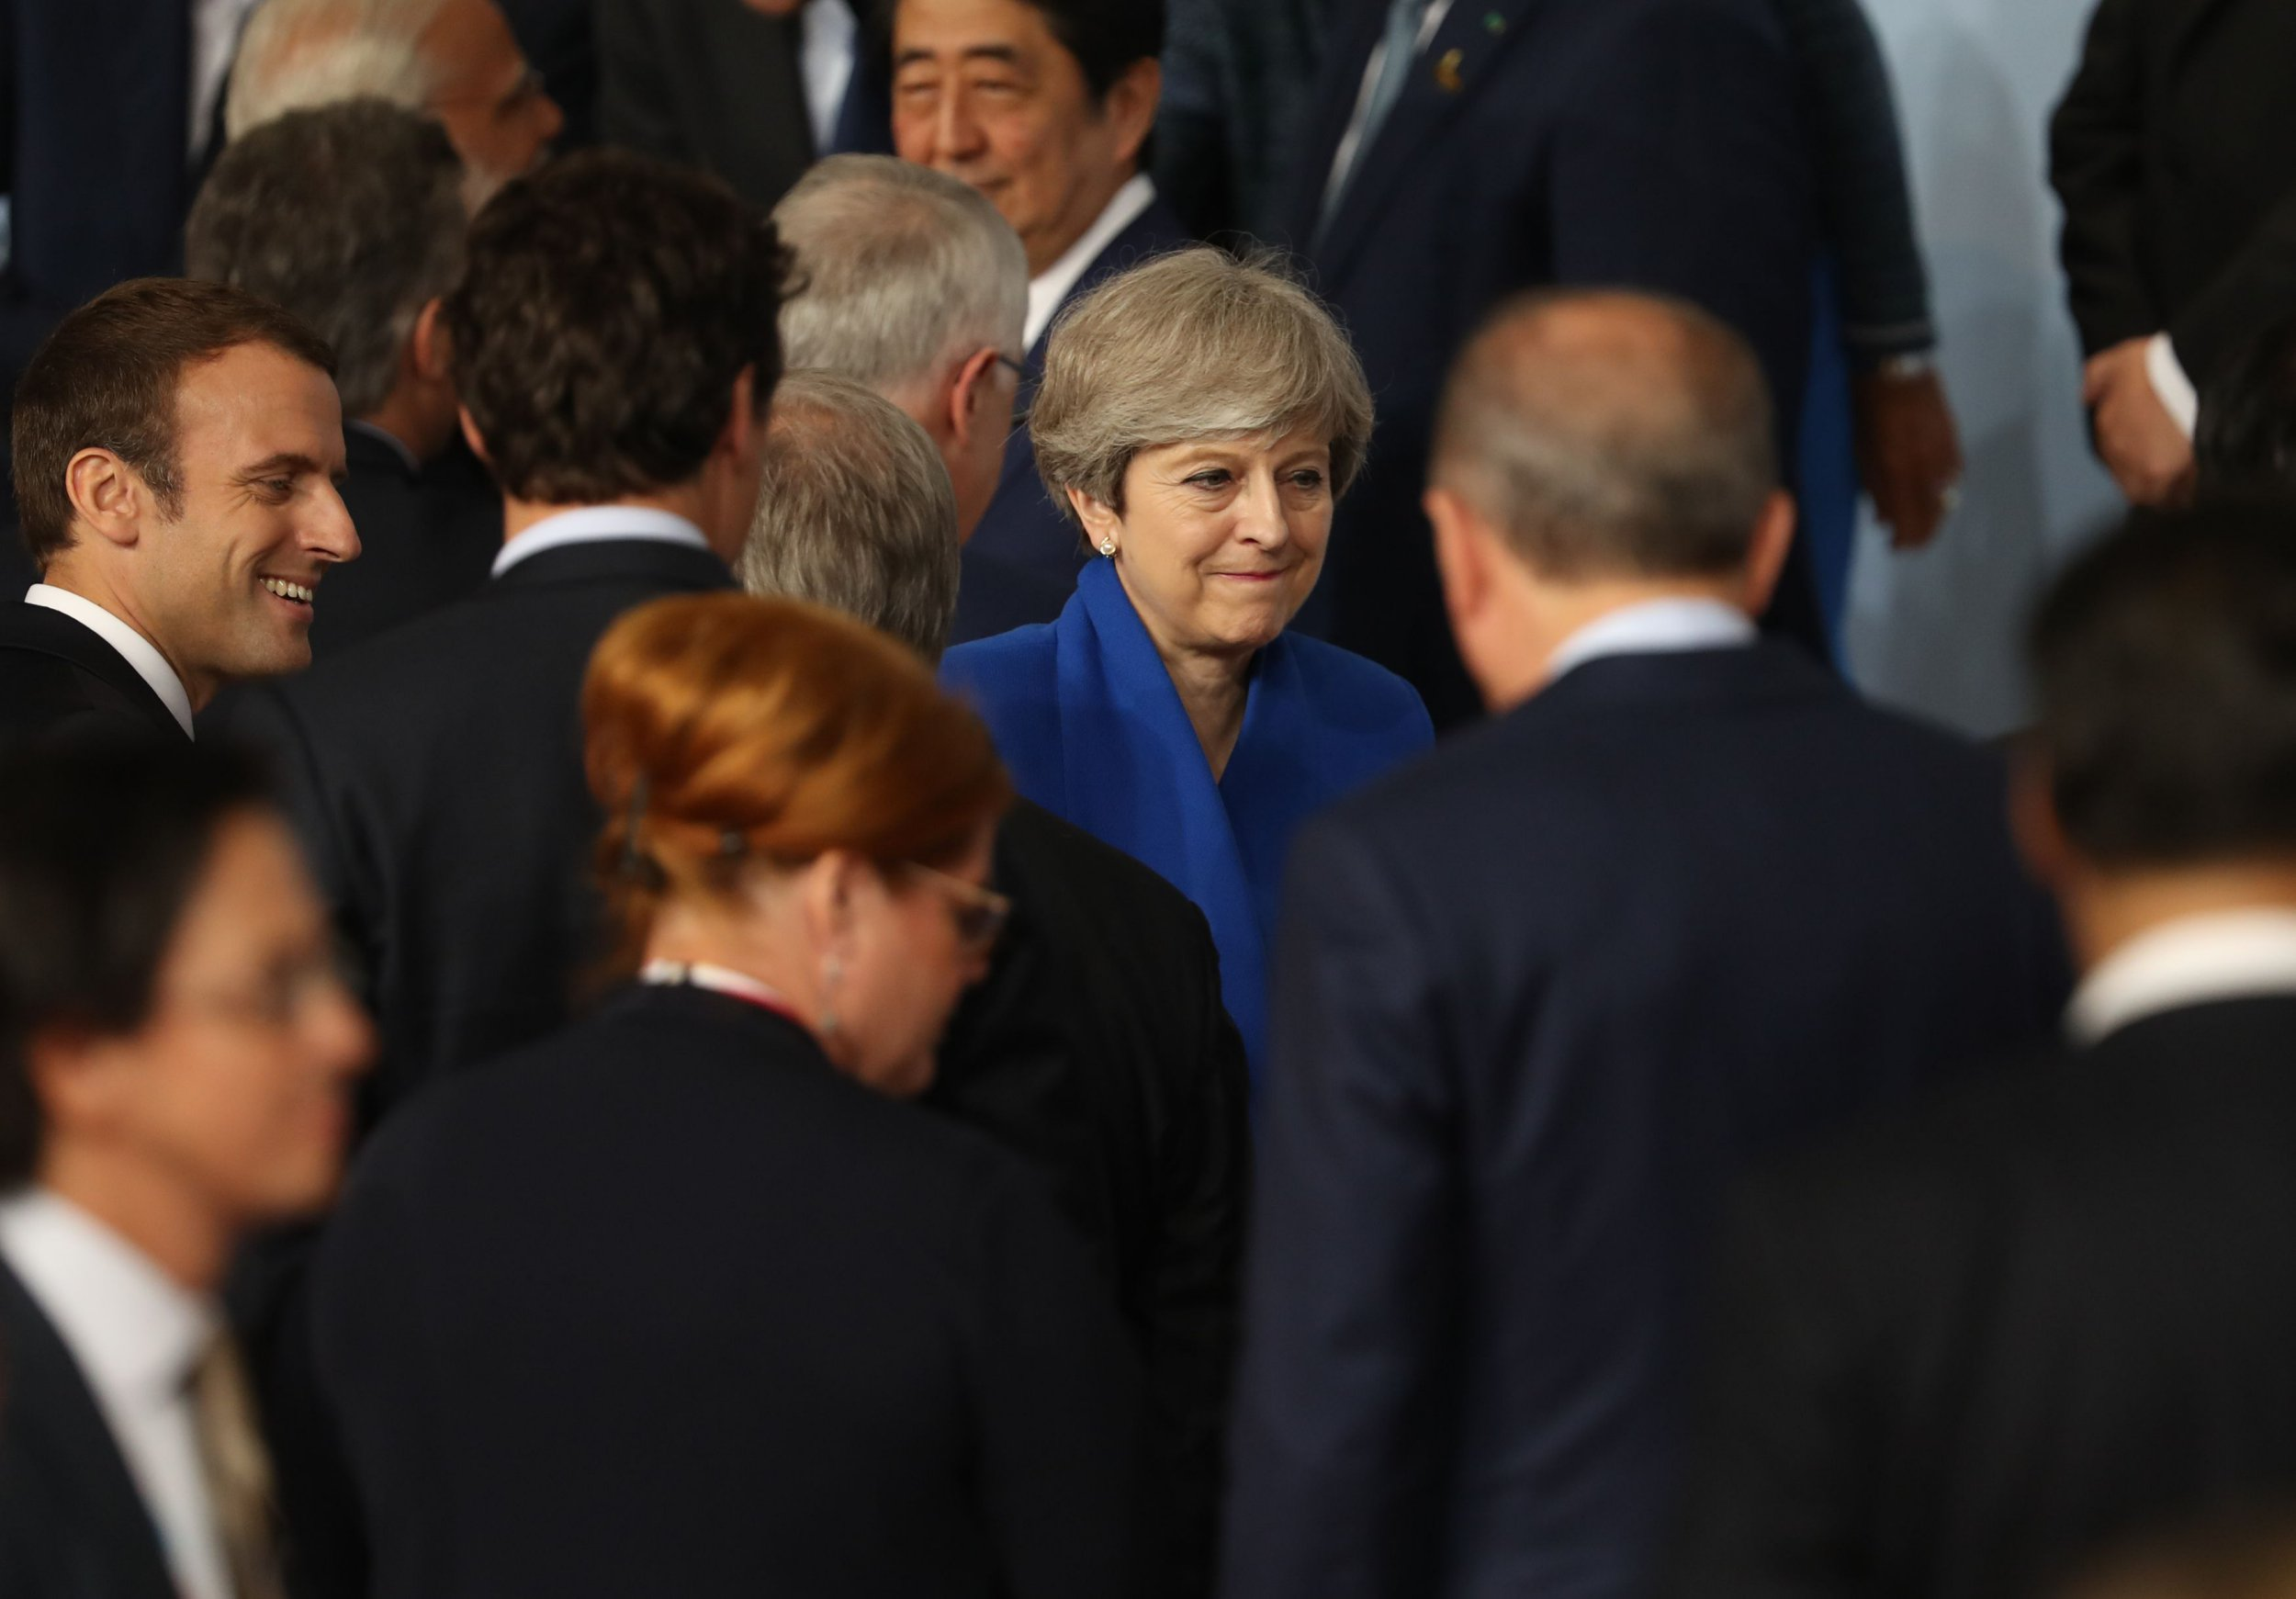 Theresa May will be prime minister at least another year, she tells G20 leaders